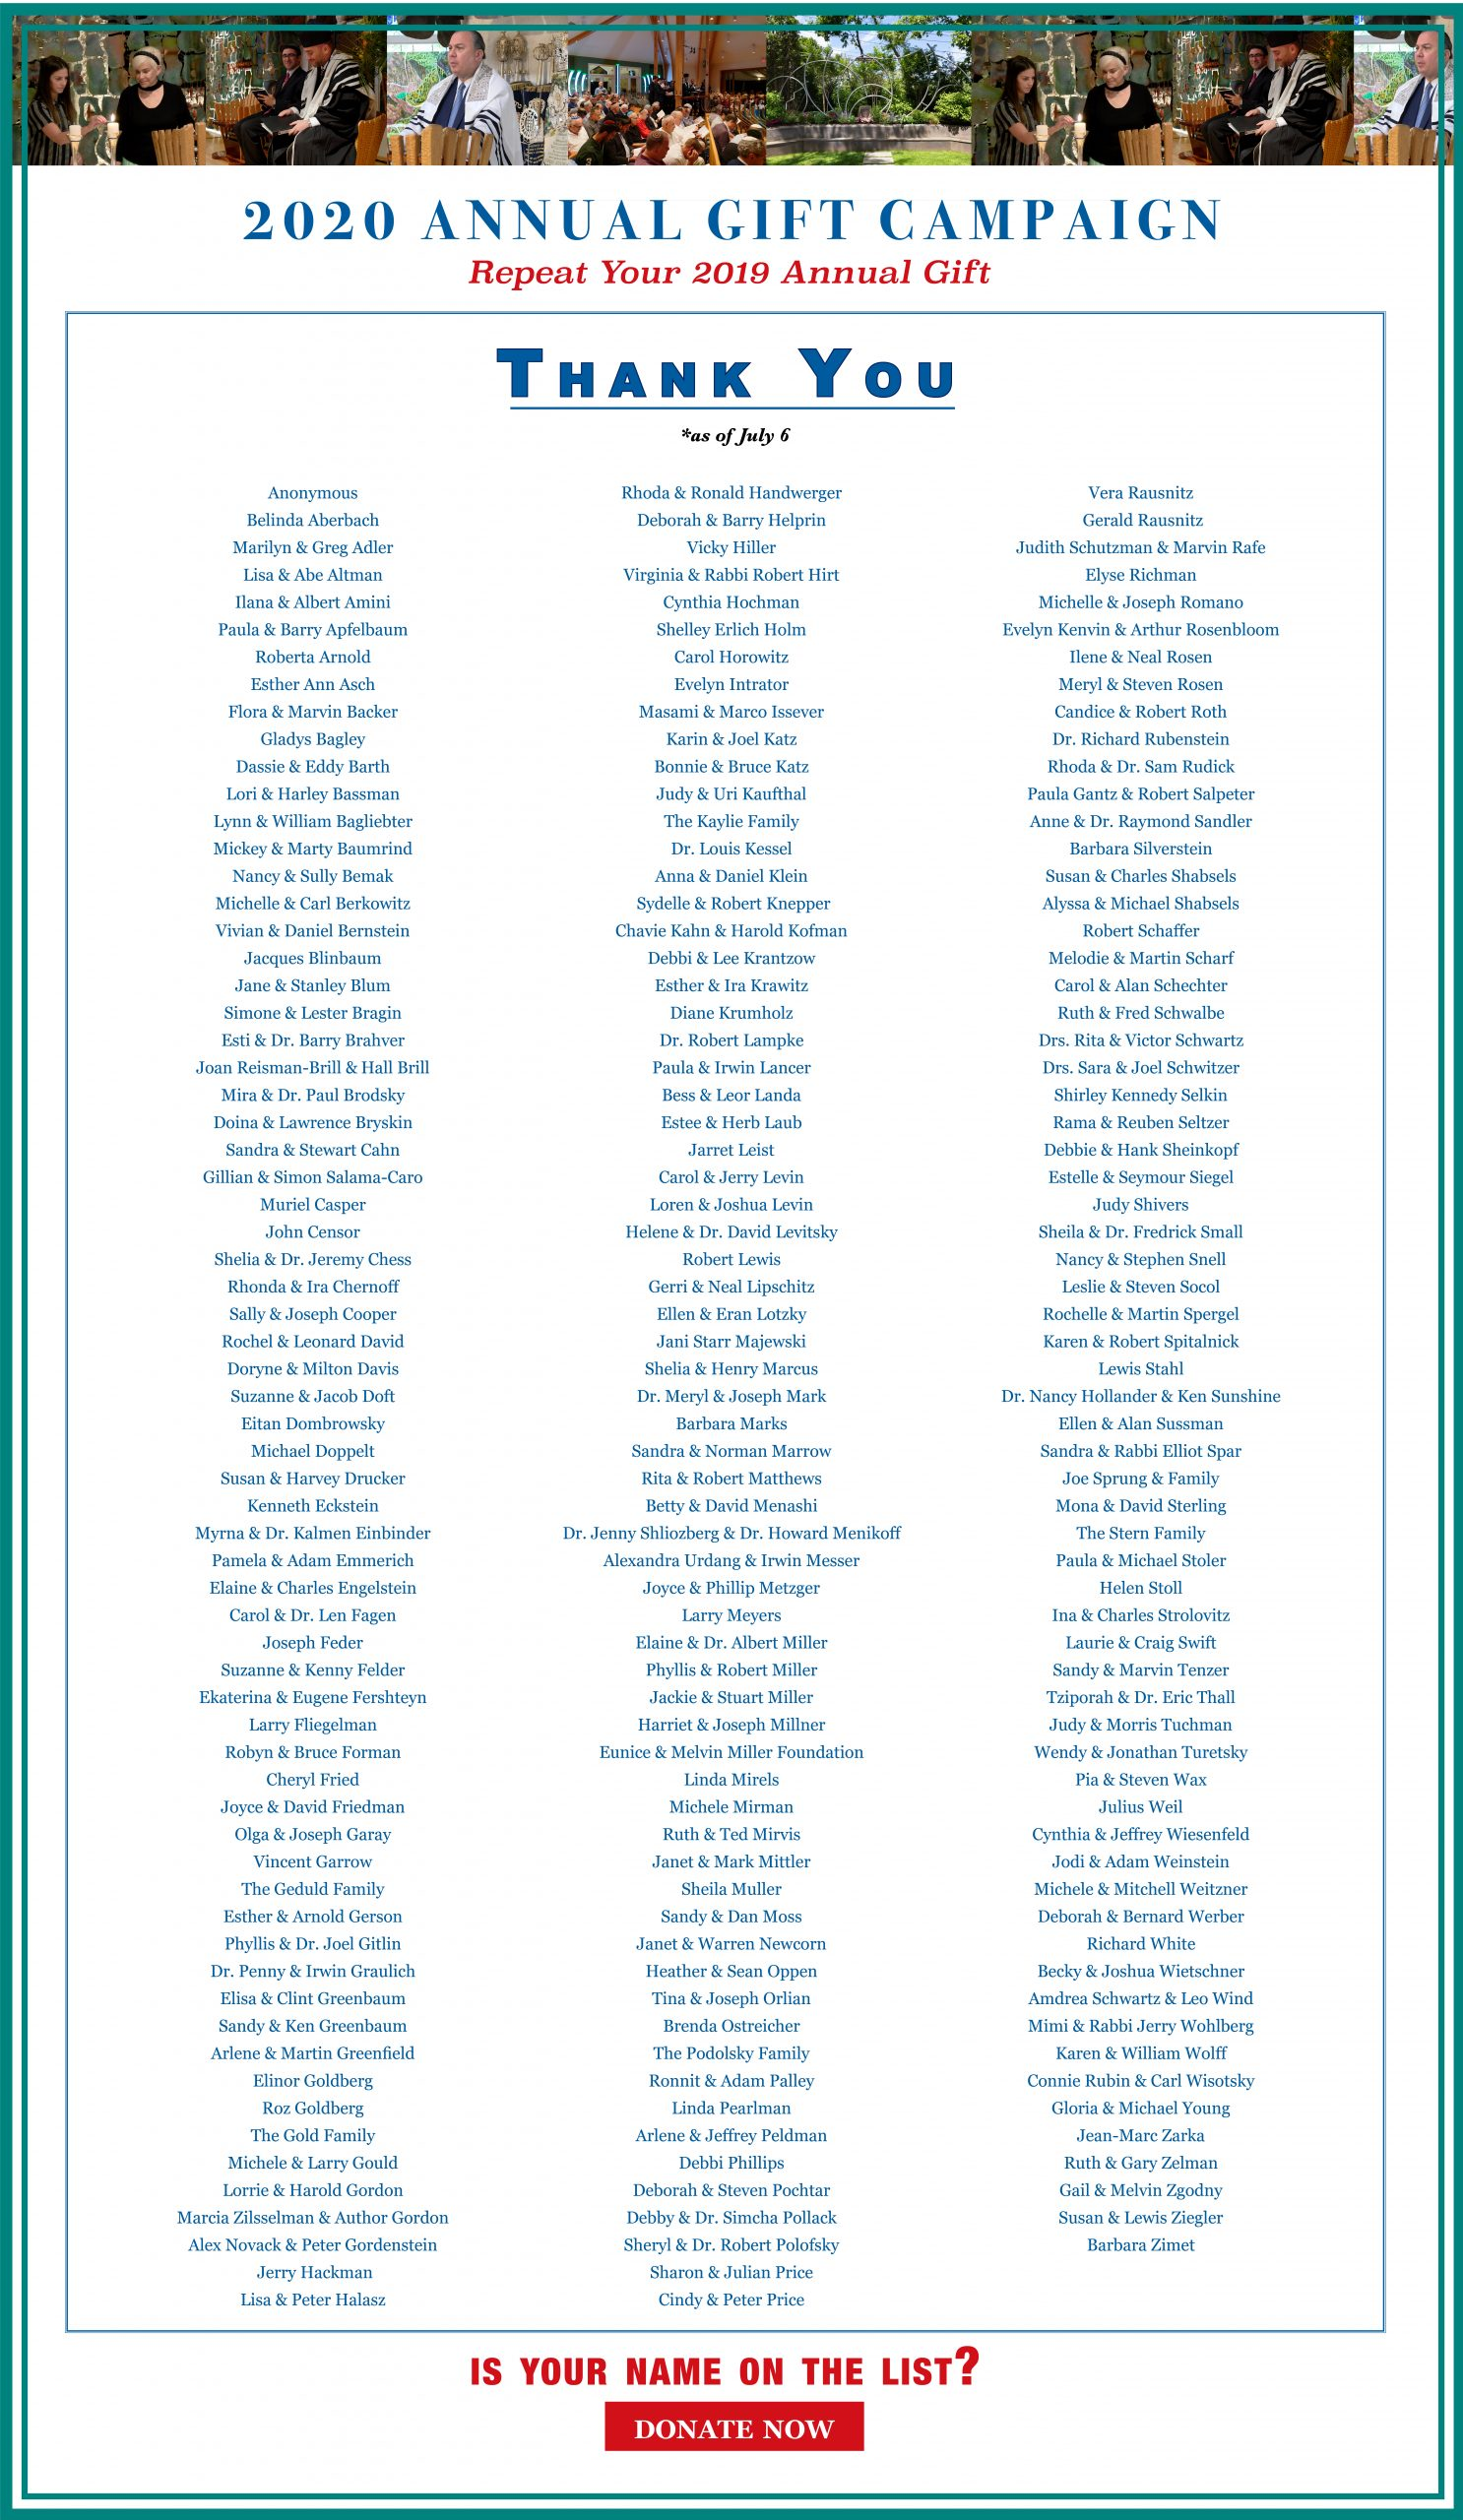 2020 Annual Gift Campaign – Are You On The List?